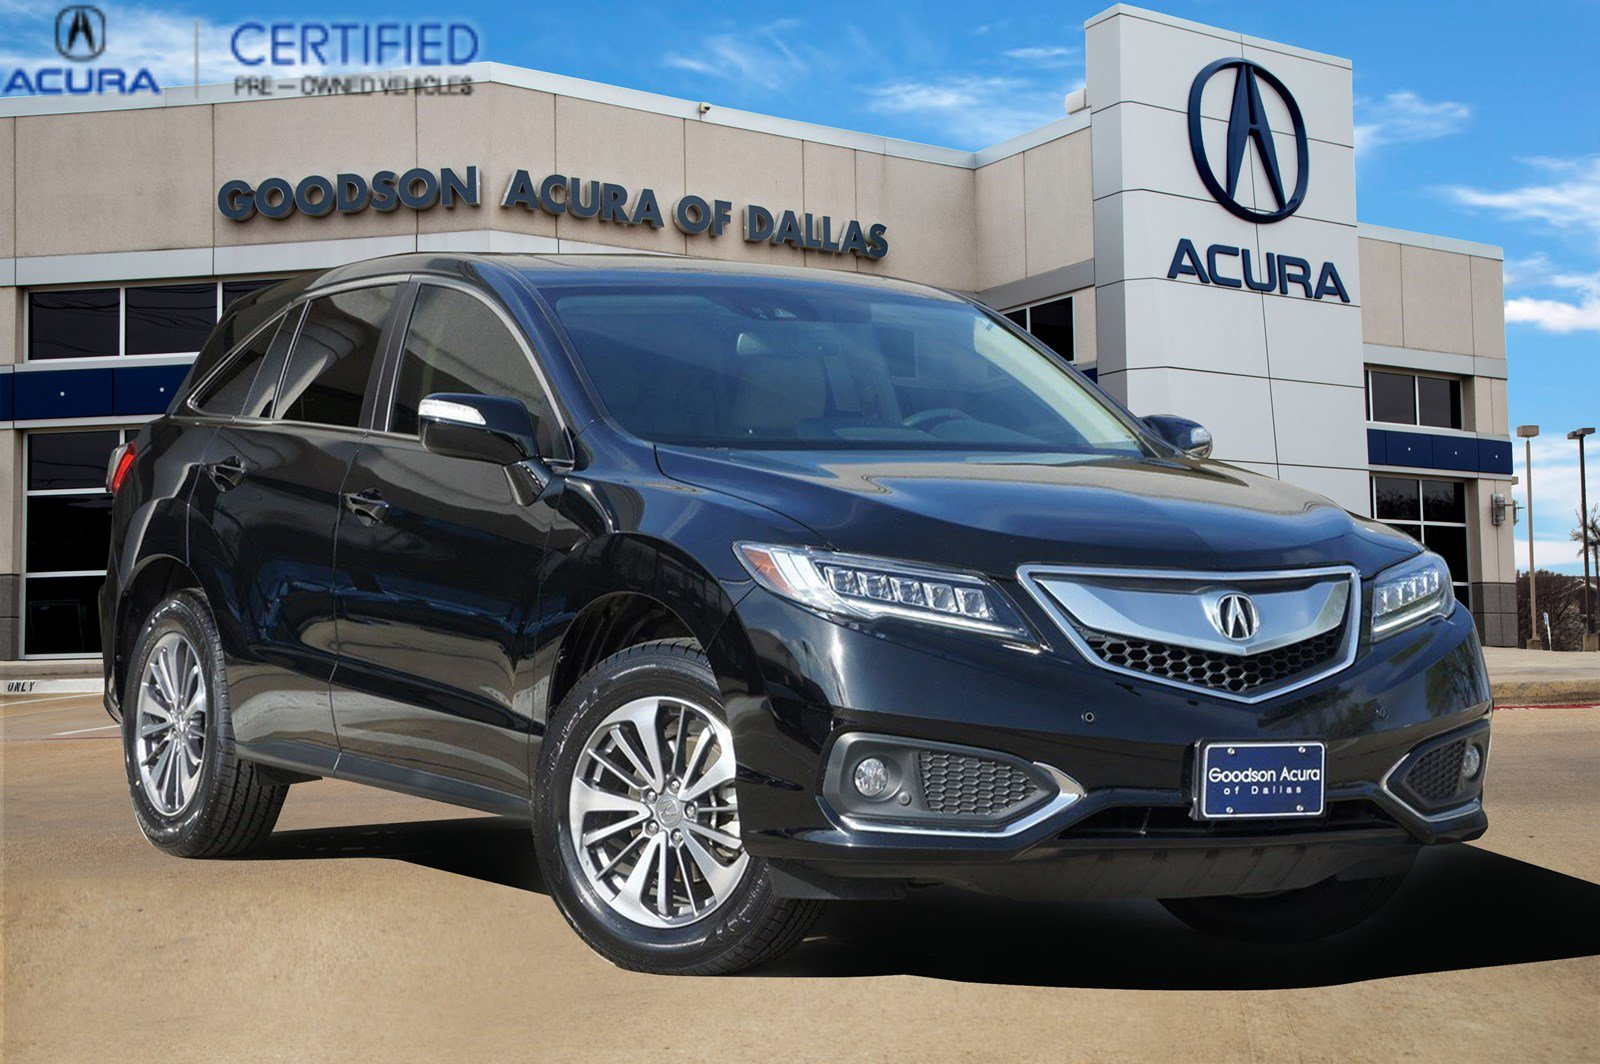 2016 Acura RDX FWD w/ Advance Package image